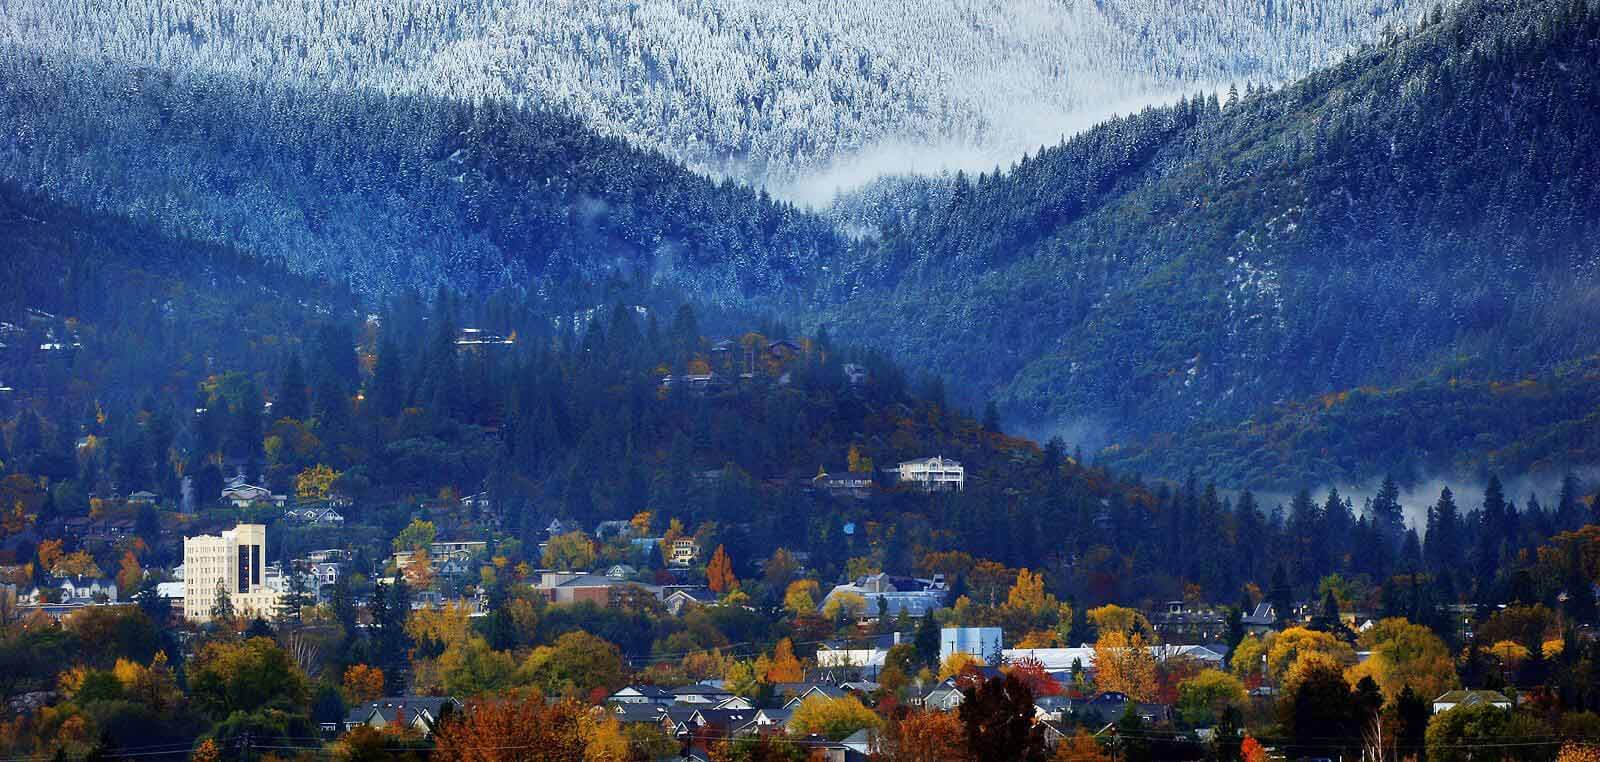 Village with a mountain view in Ashland Oregon